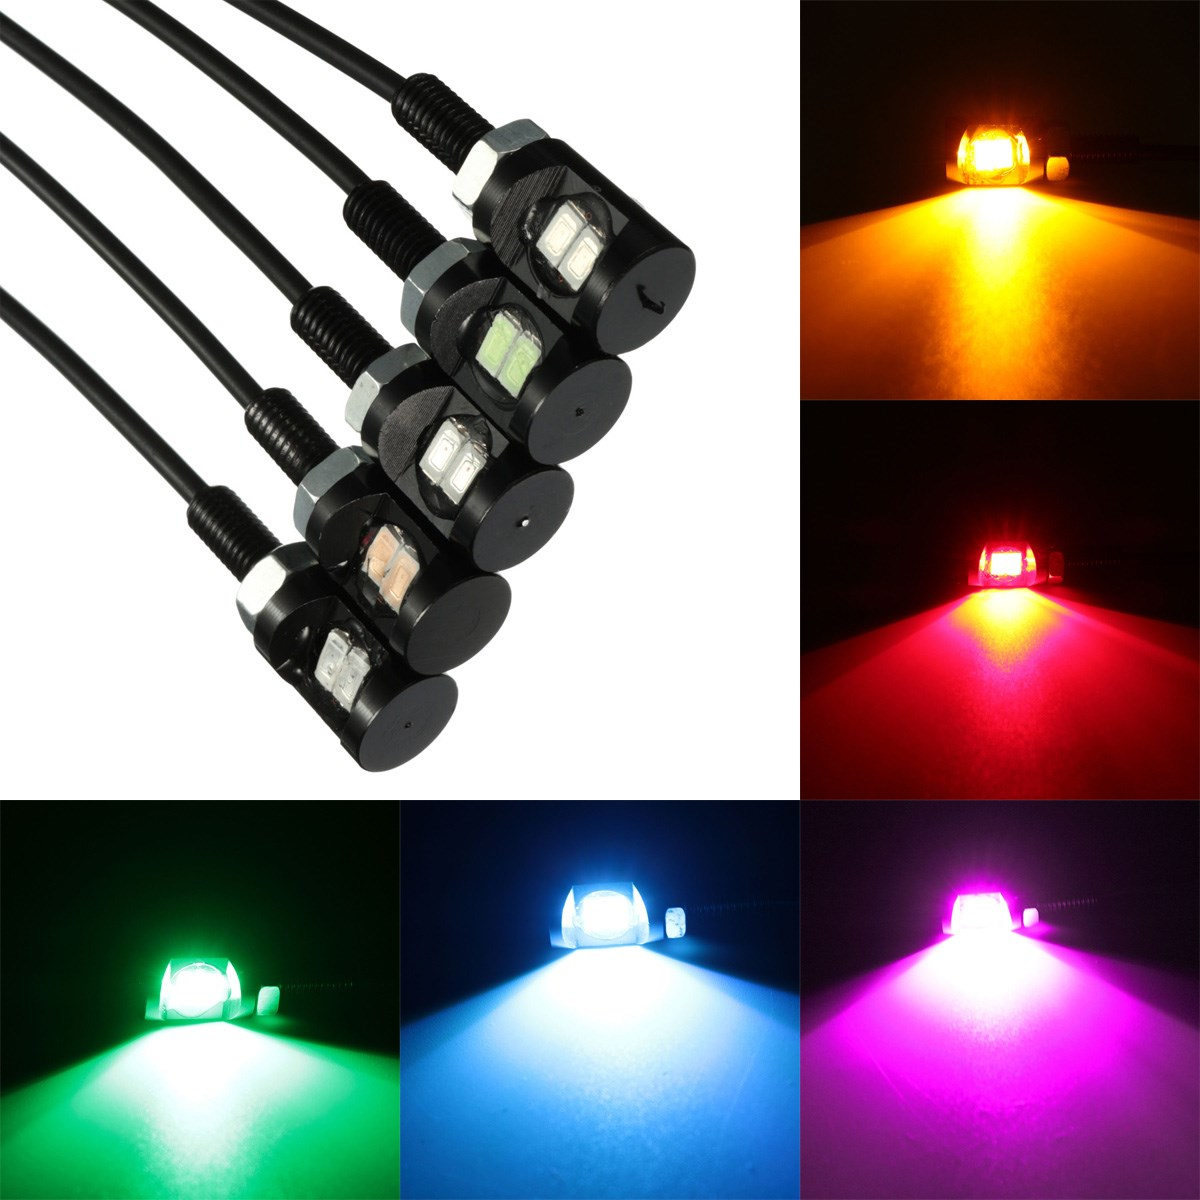 Safego Pair 12mm White LED License Plate Screw Blot Light For Motorcycle and Cars